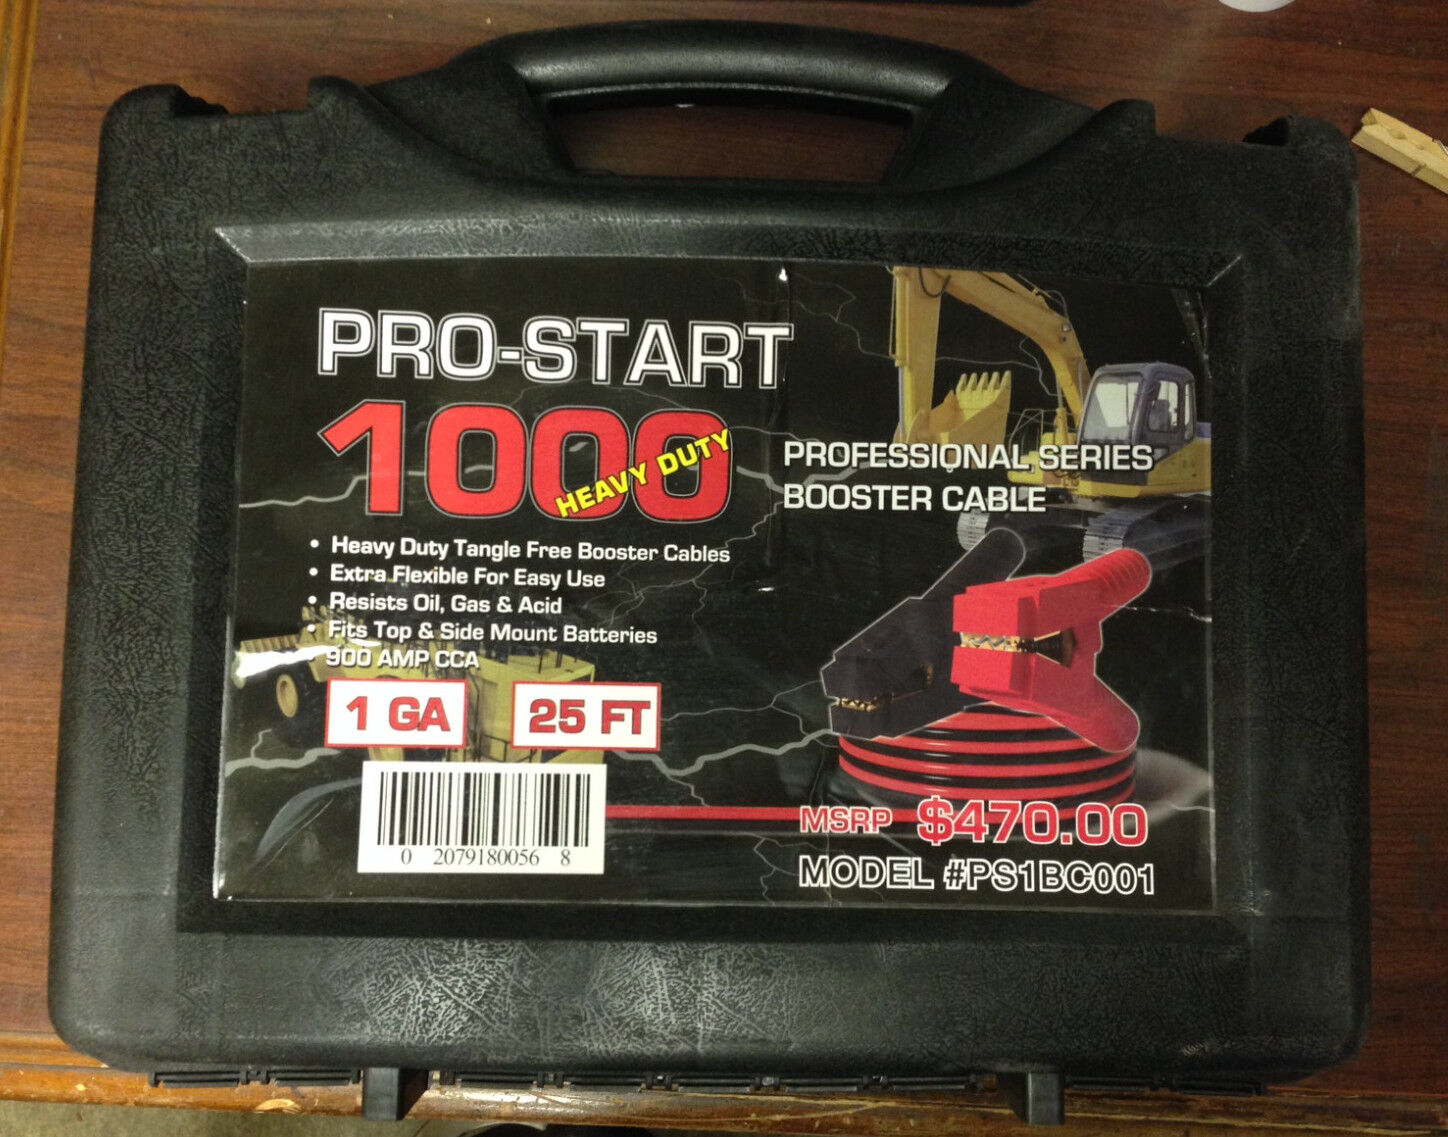 PRO-START 1 GAUGE 25 FT BOOSTER CABLE - NEW - FREE SHIPPING